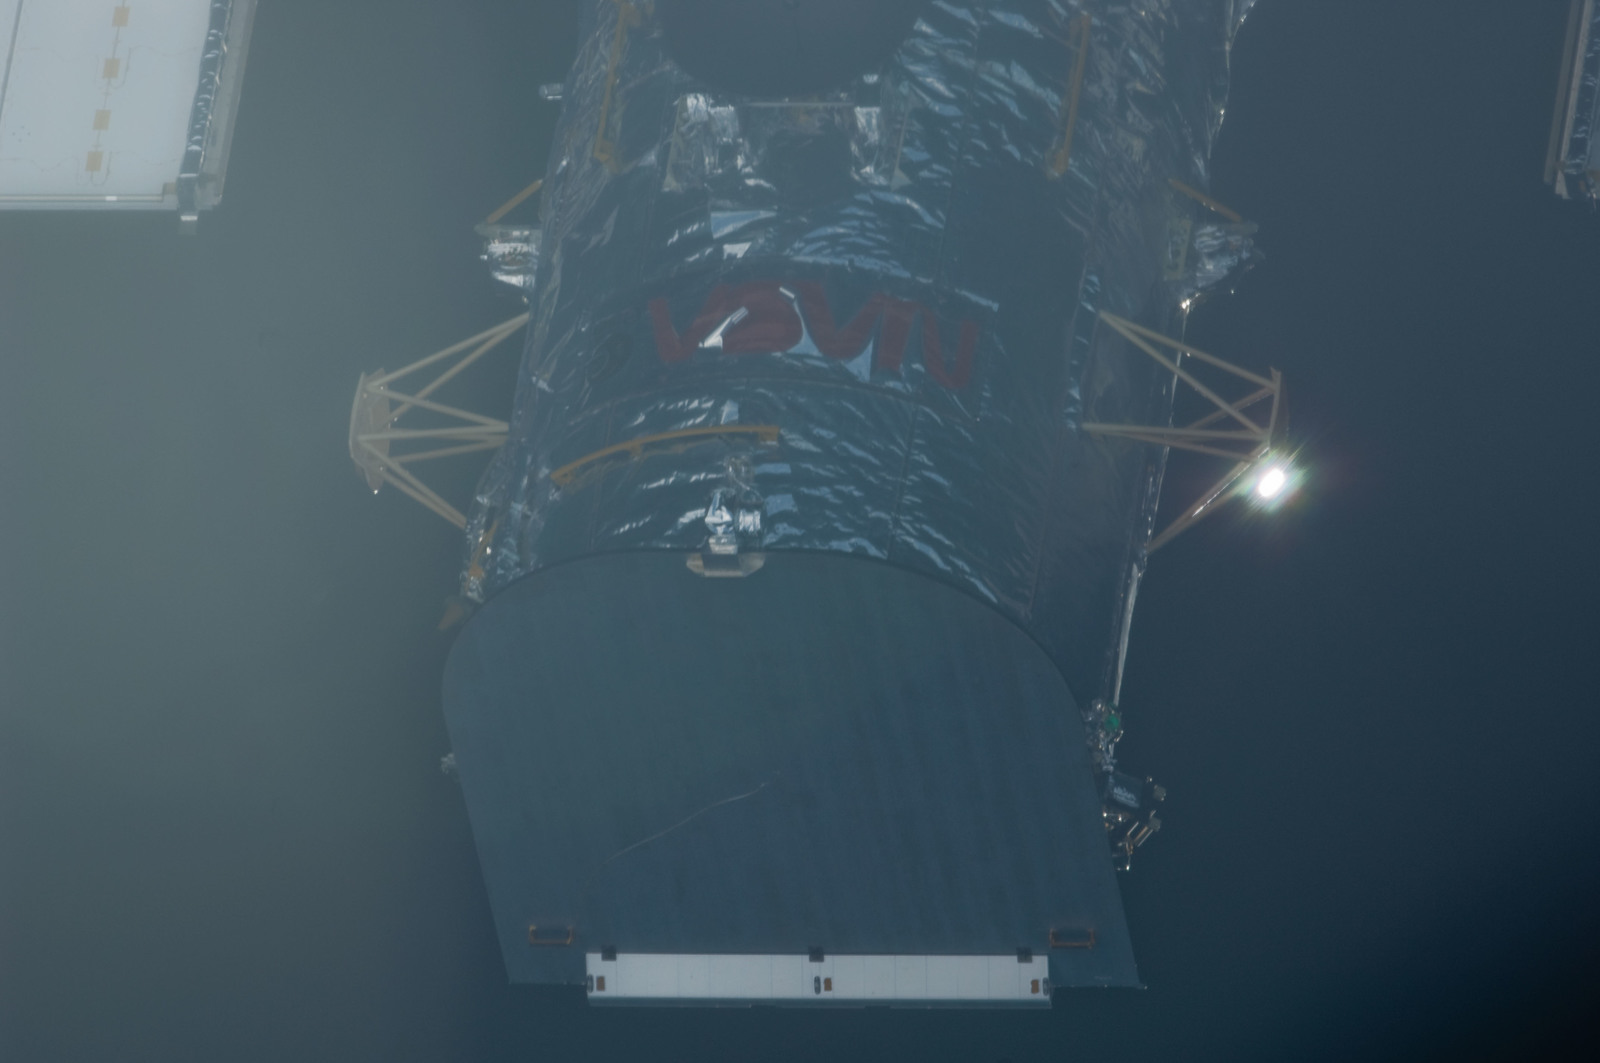 S125E006547 - STS-125 - Hubble Space Telescope (HST) prior to grapple by STS-125 Shuttle Atlantis